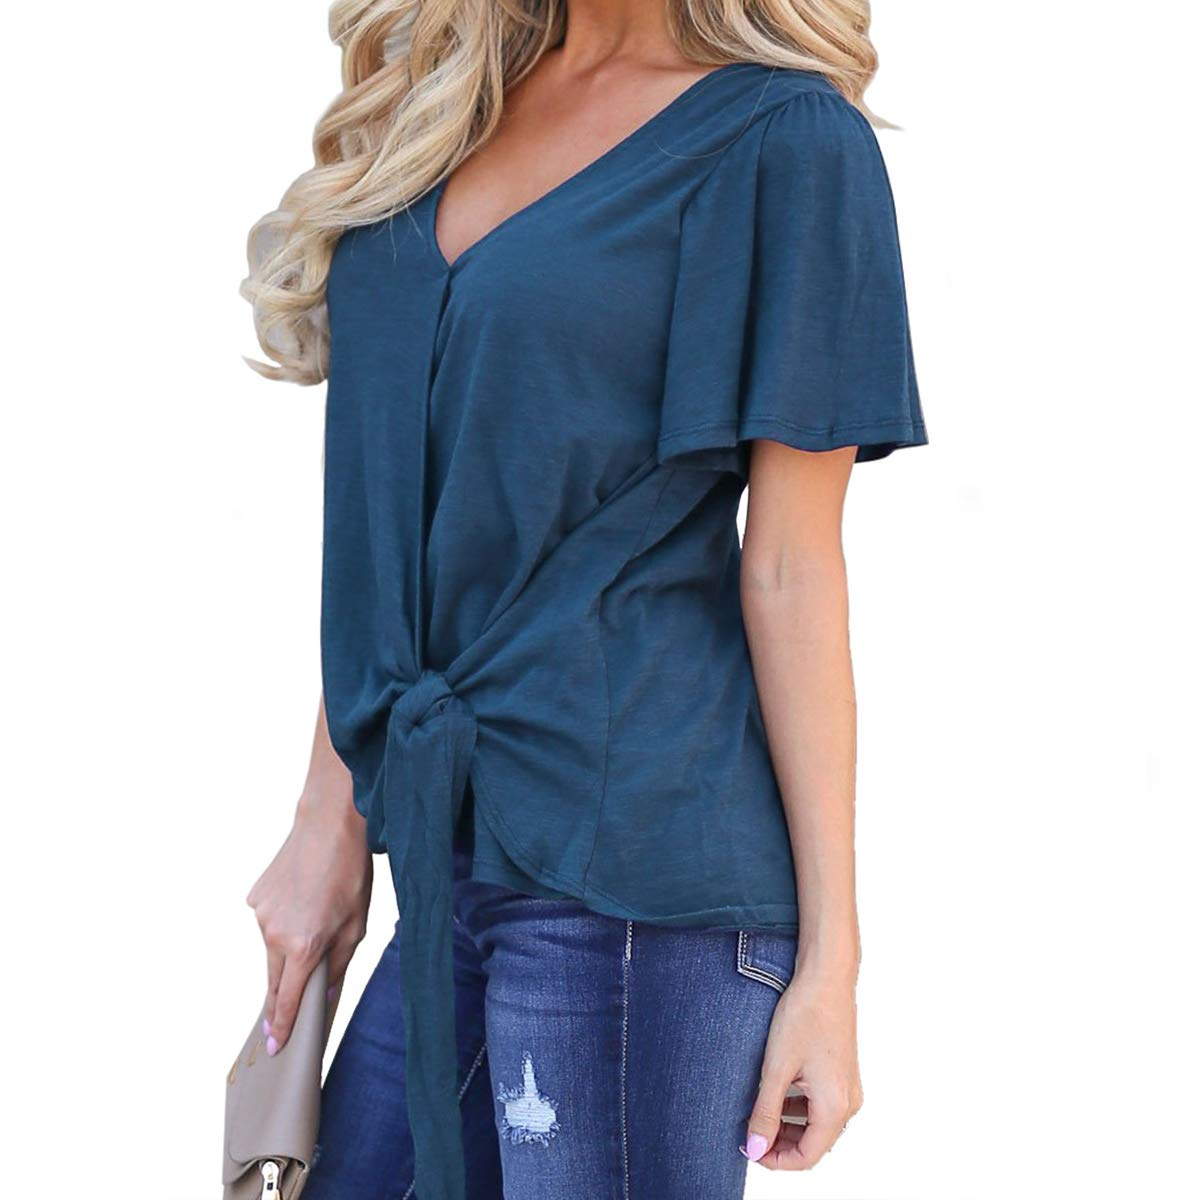 395511349 SHERONV Women's Short Sleeve Tie Knot Wrap V Neck Casual Blouses T Shirt  Tops at Amazon Women's Clothing store: